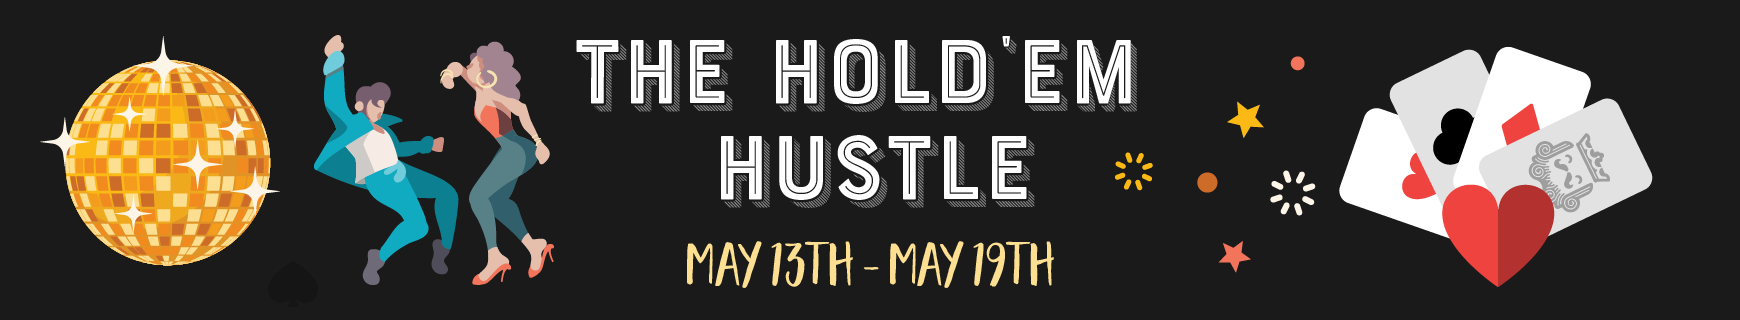 The hold'em hustle %28870 x 160%29 2x %282%29